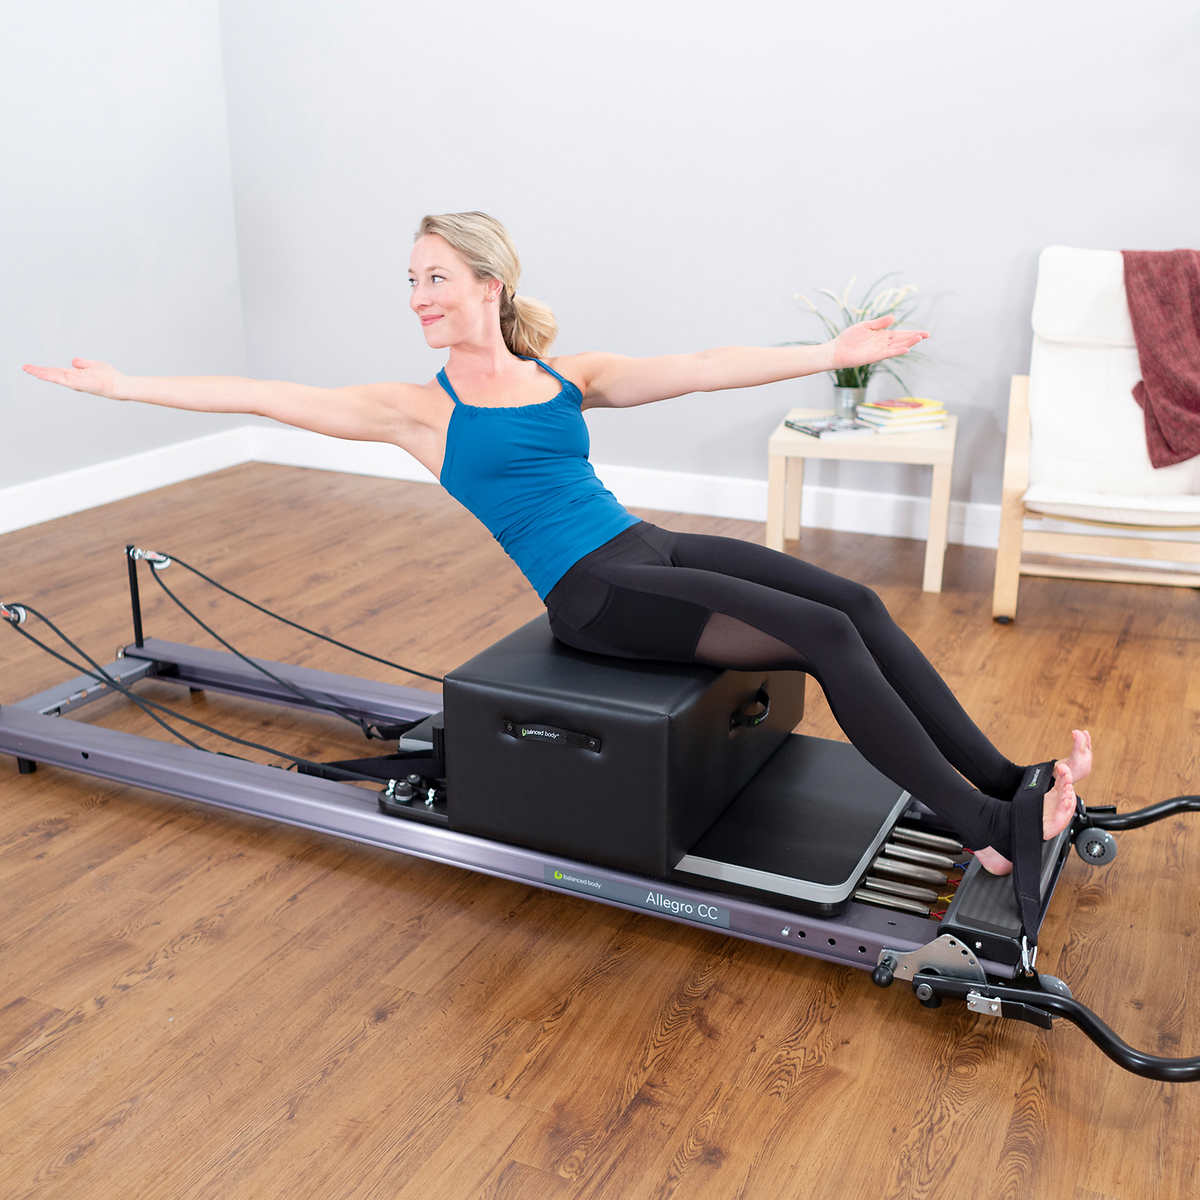 Balanced body pilates chair - Click To Zoom